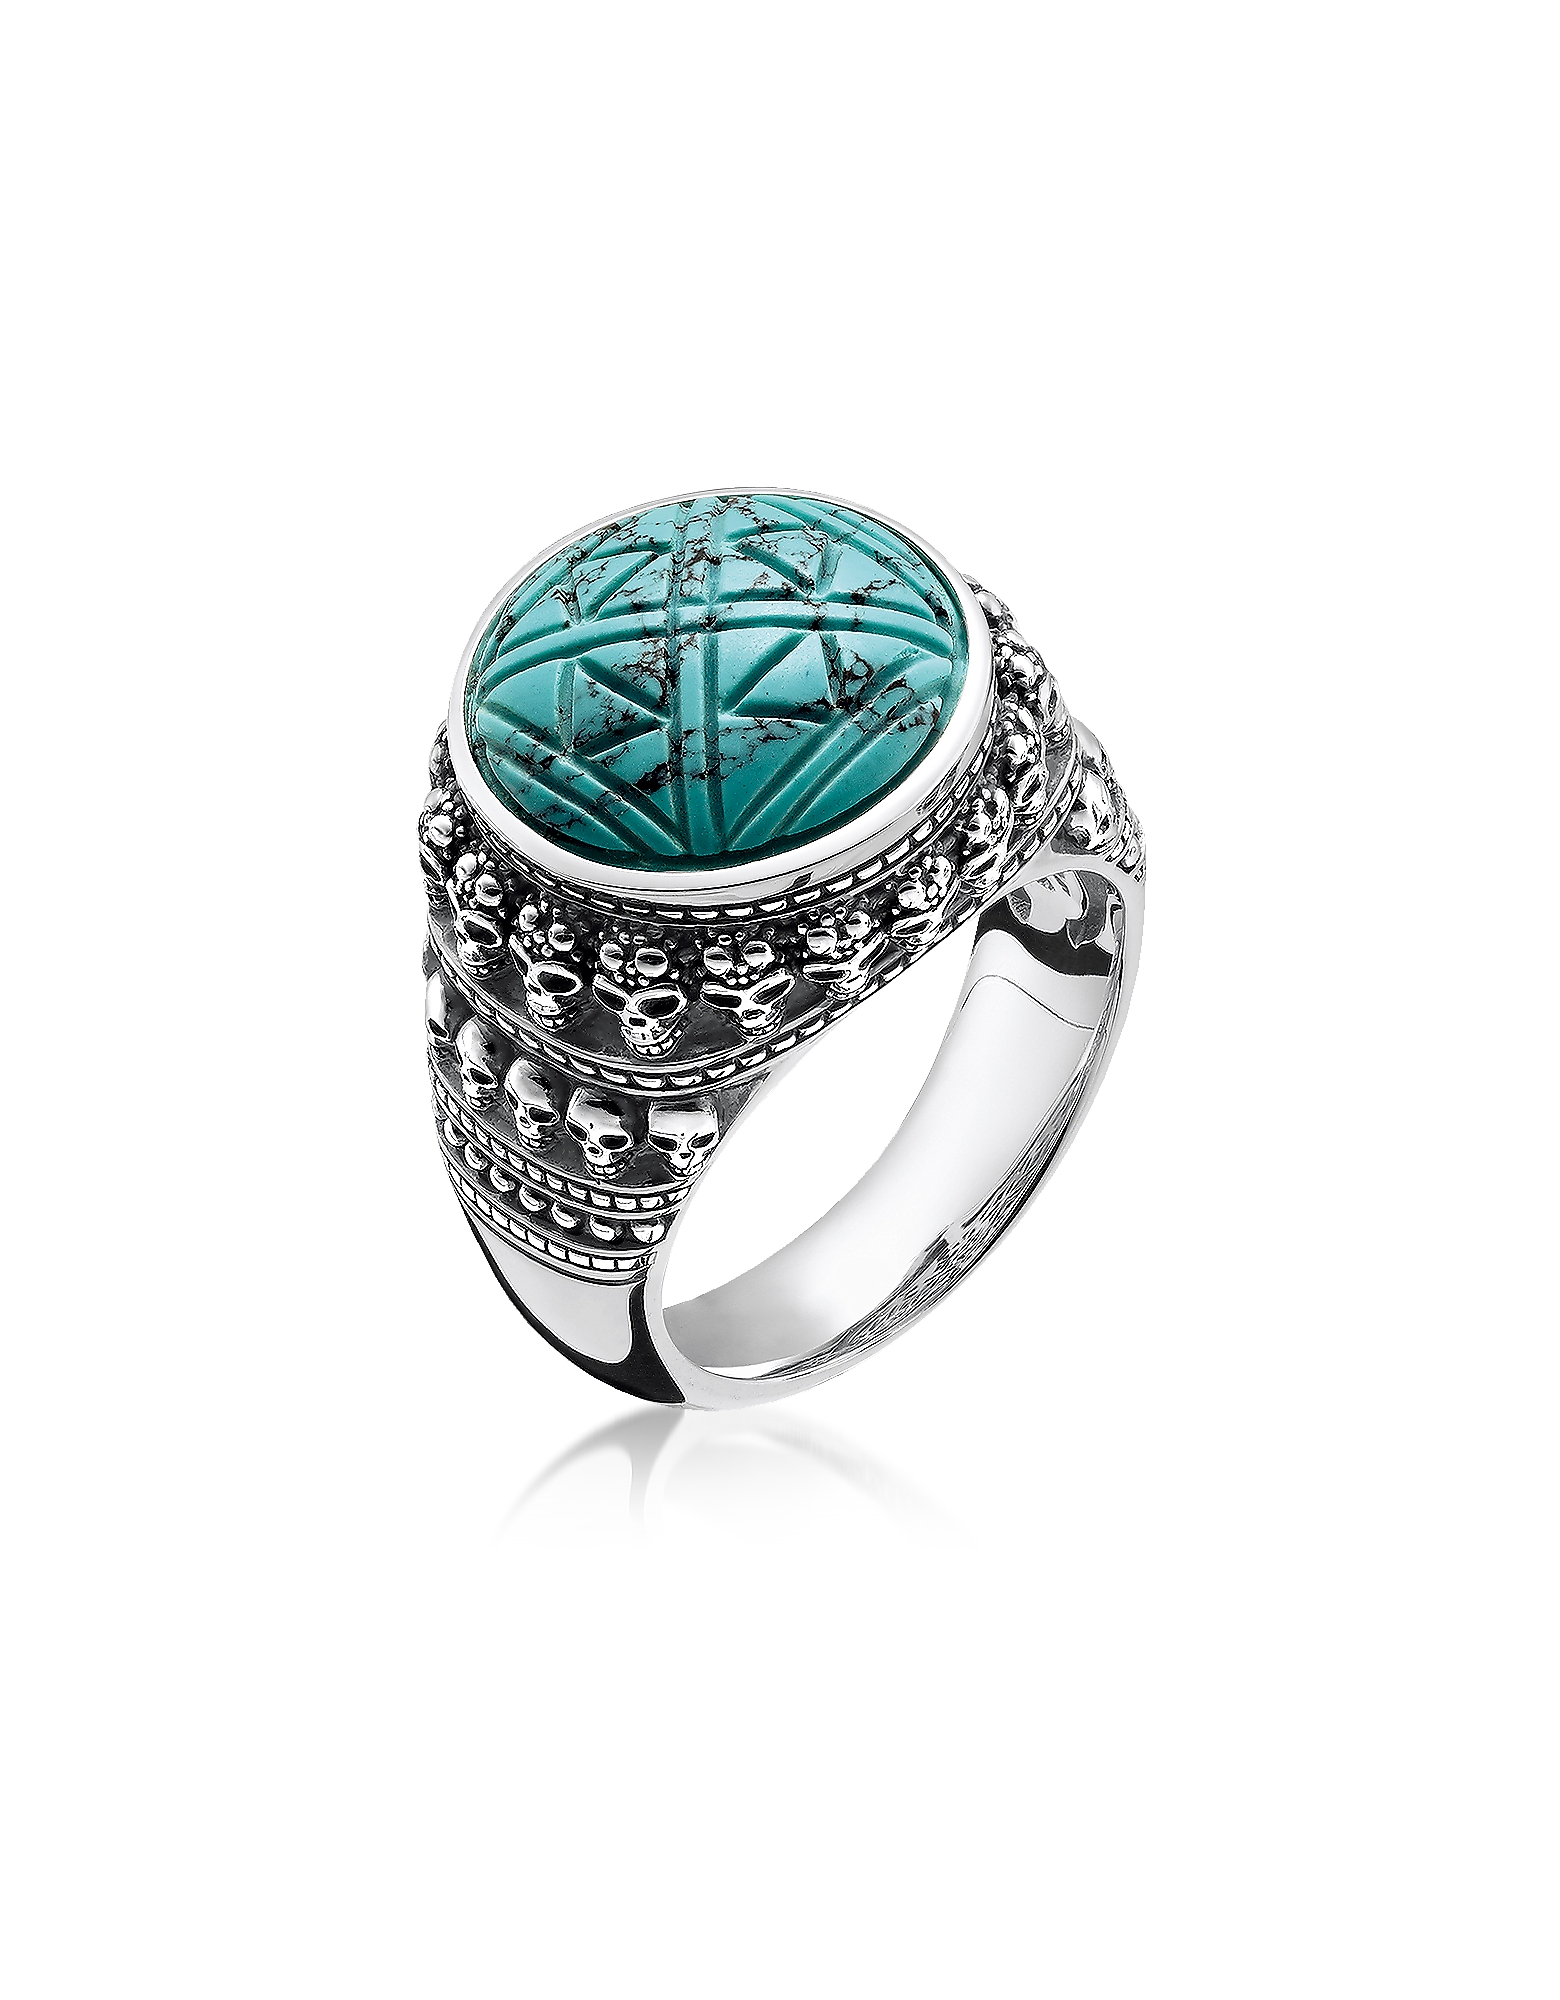 Thomas Sabo Rings, Blackened 925 Sterling Silver Ethnic Skulls Turquoise Ring